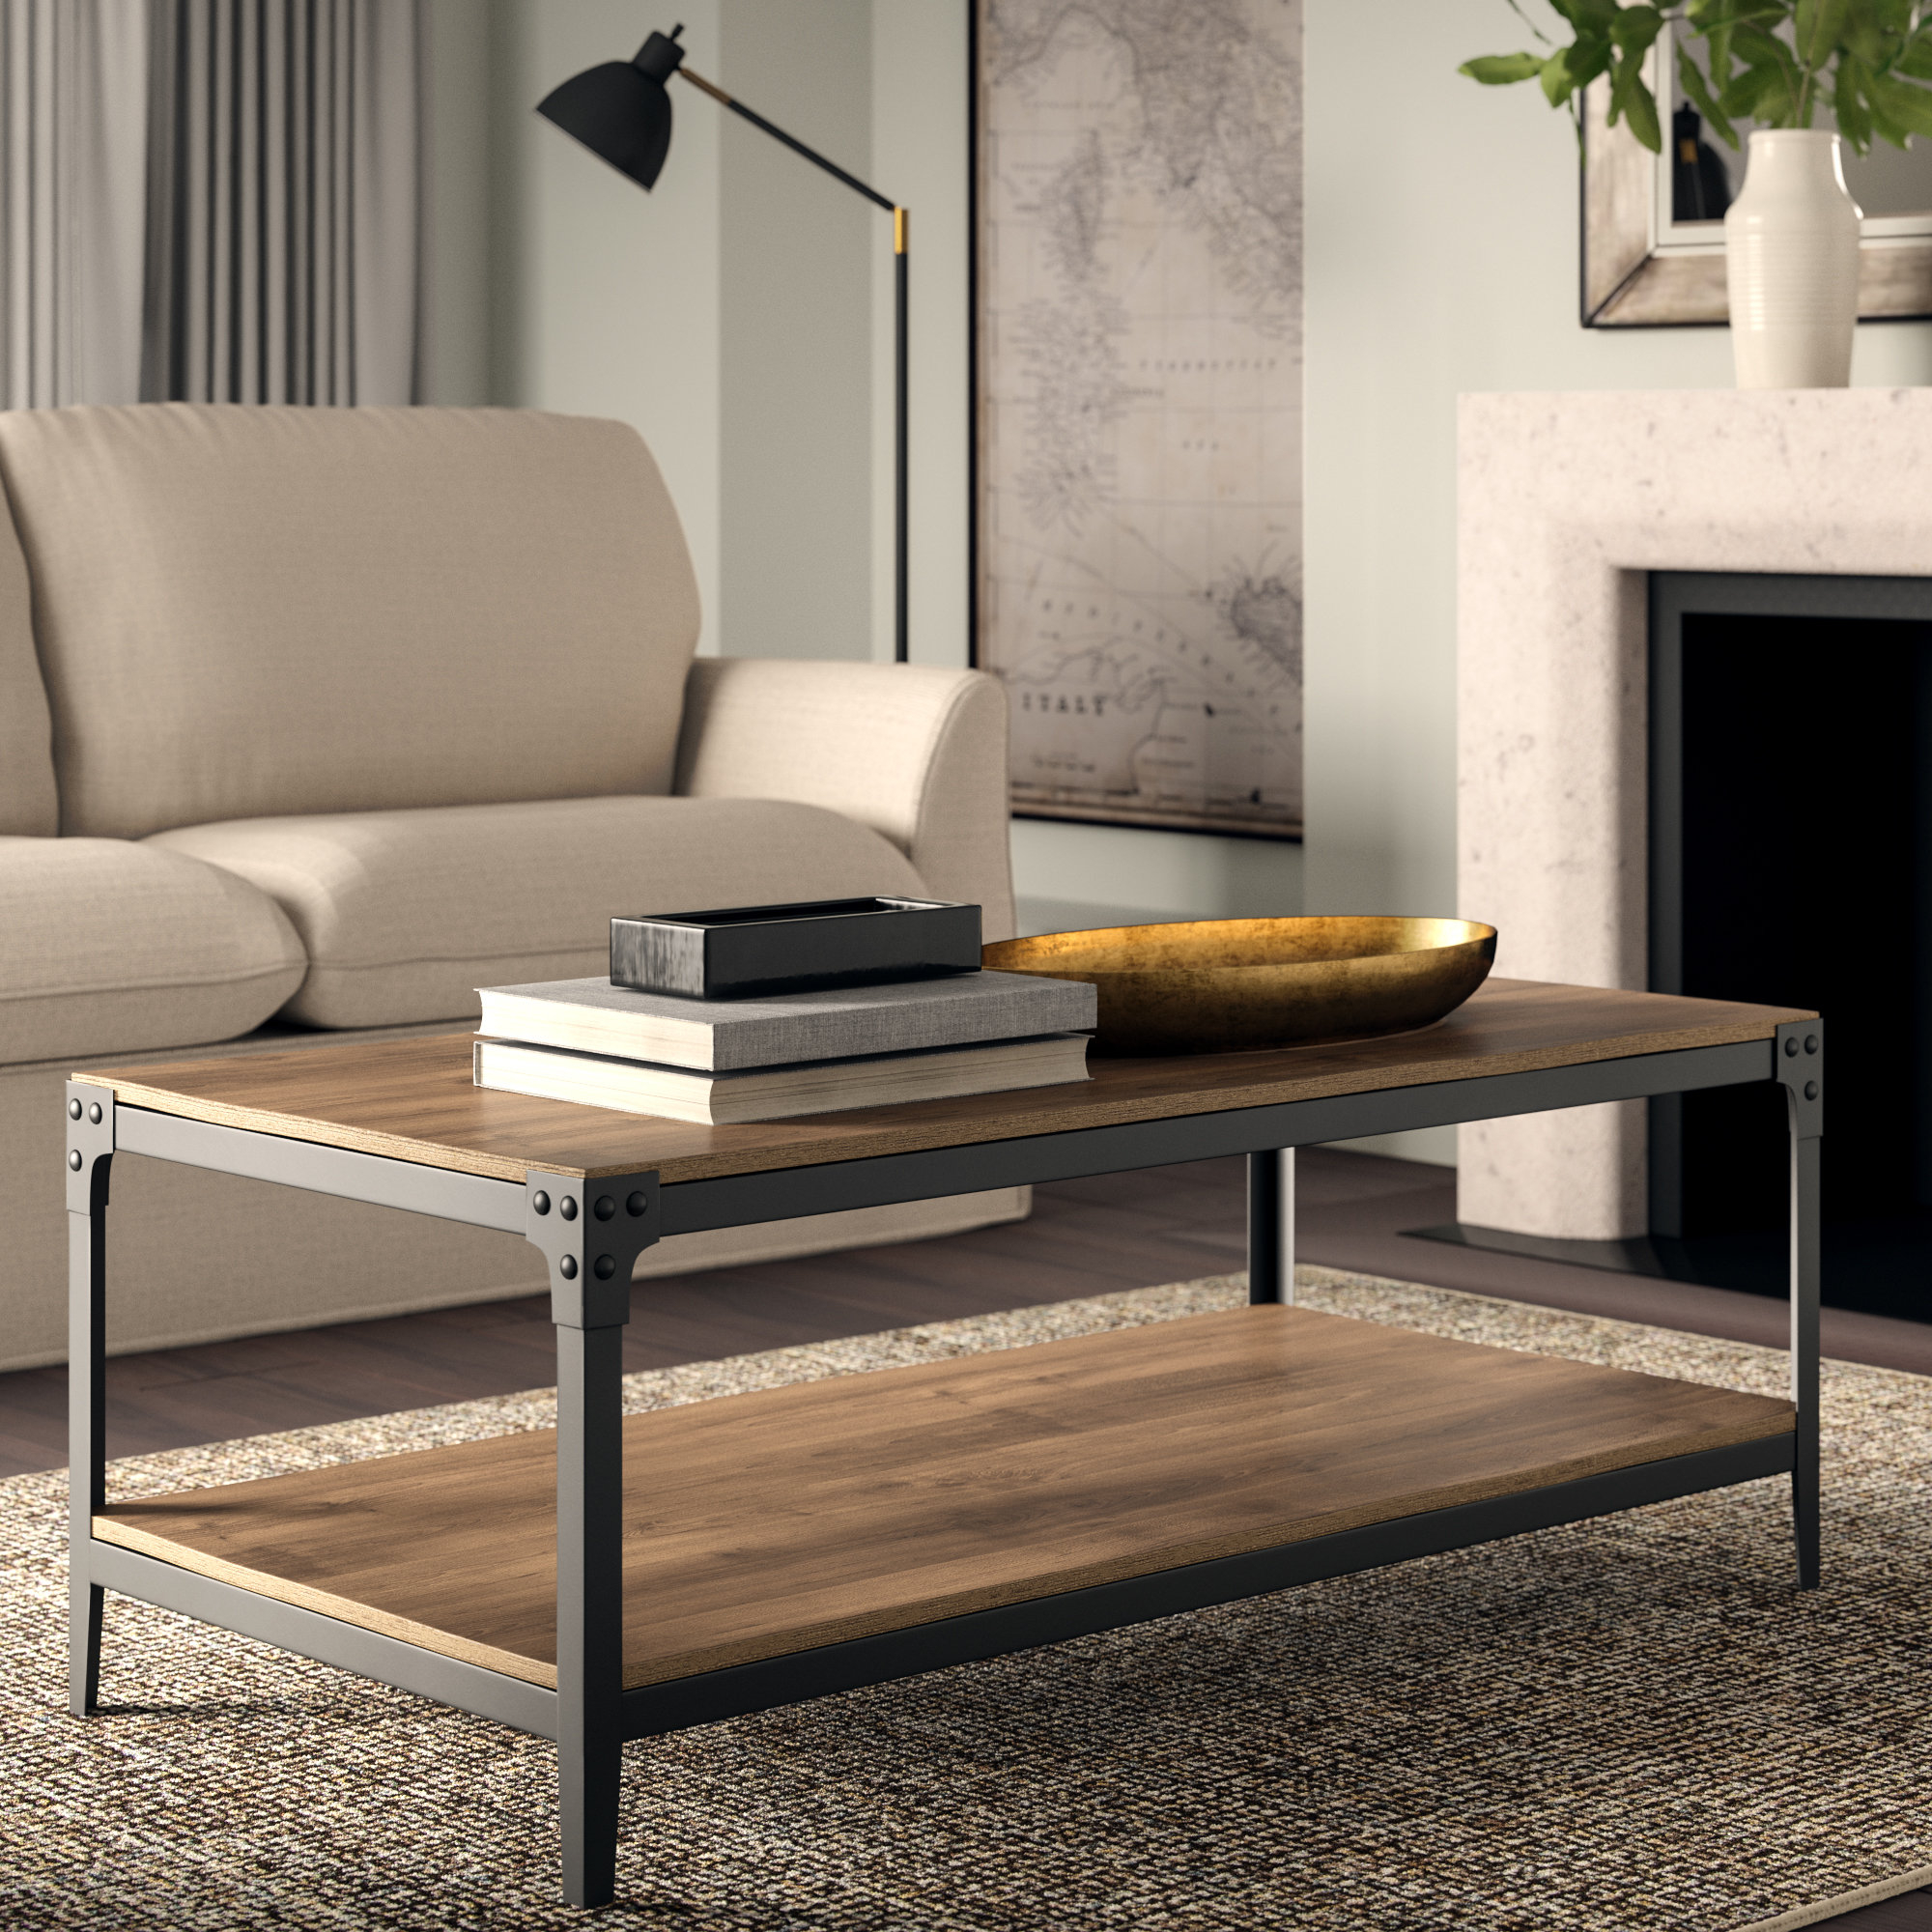 Wayfair Greyleigh Cainsville 3 Piece Coffee Table Set for sizing 2000 X 2000